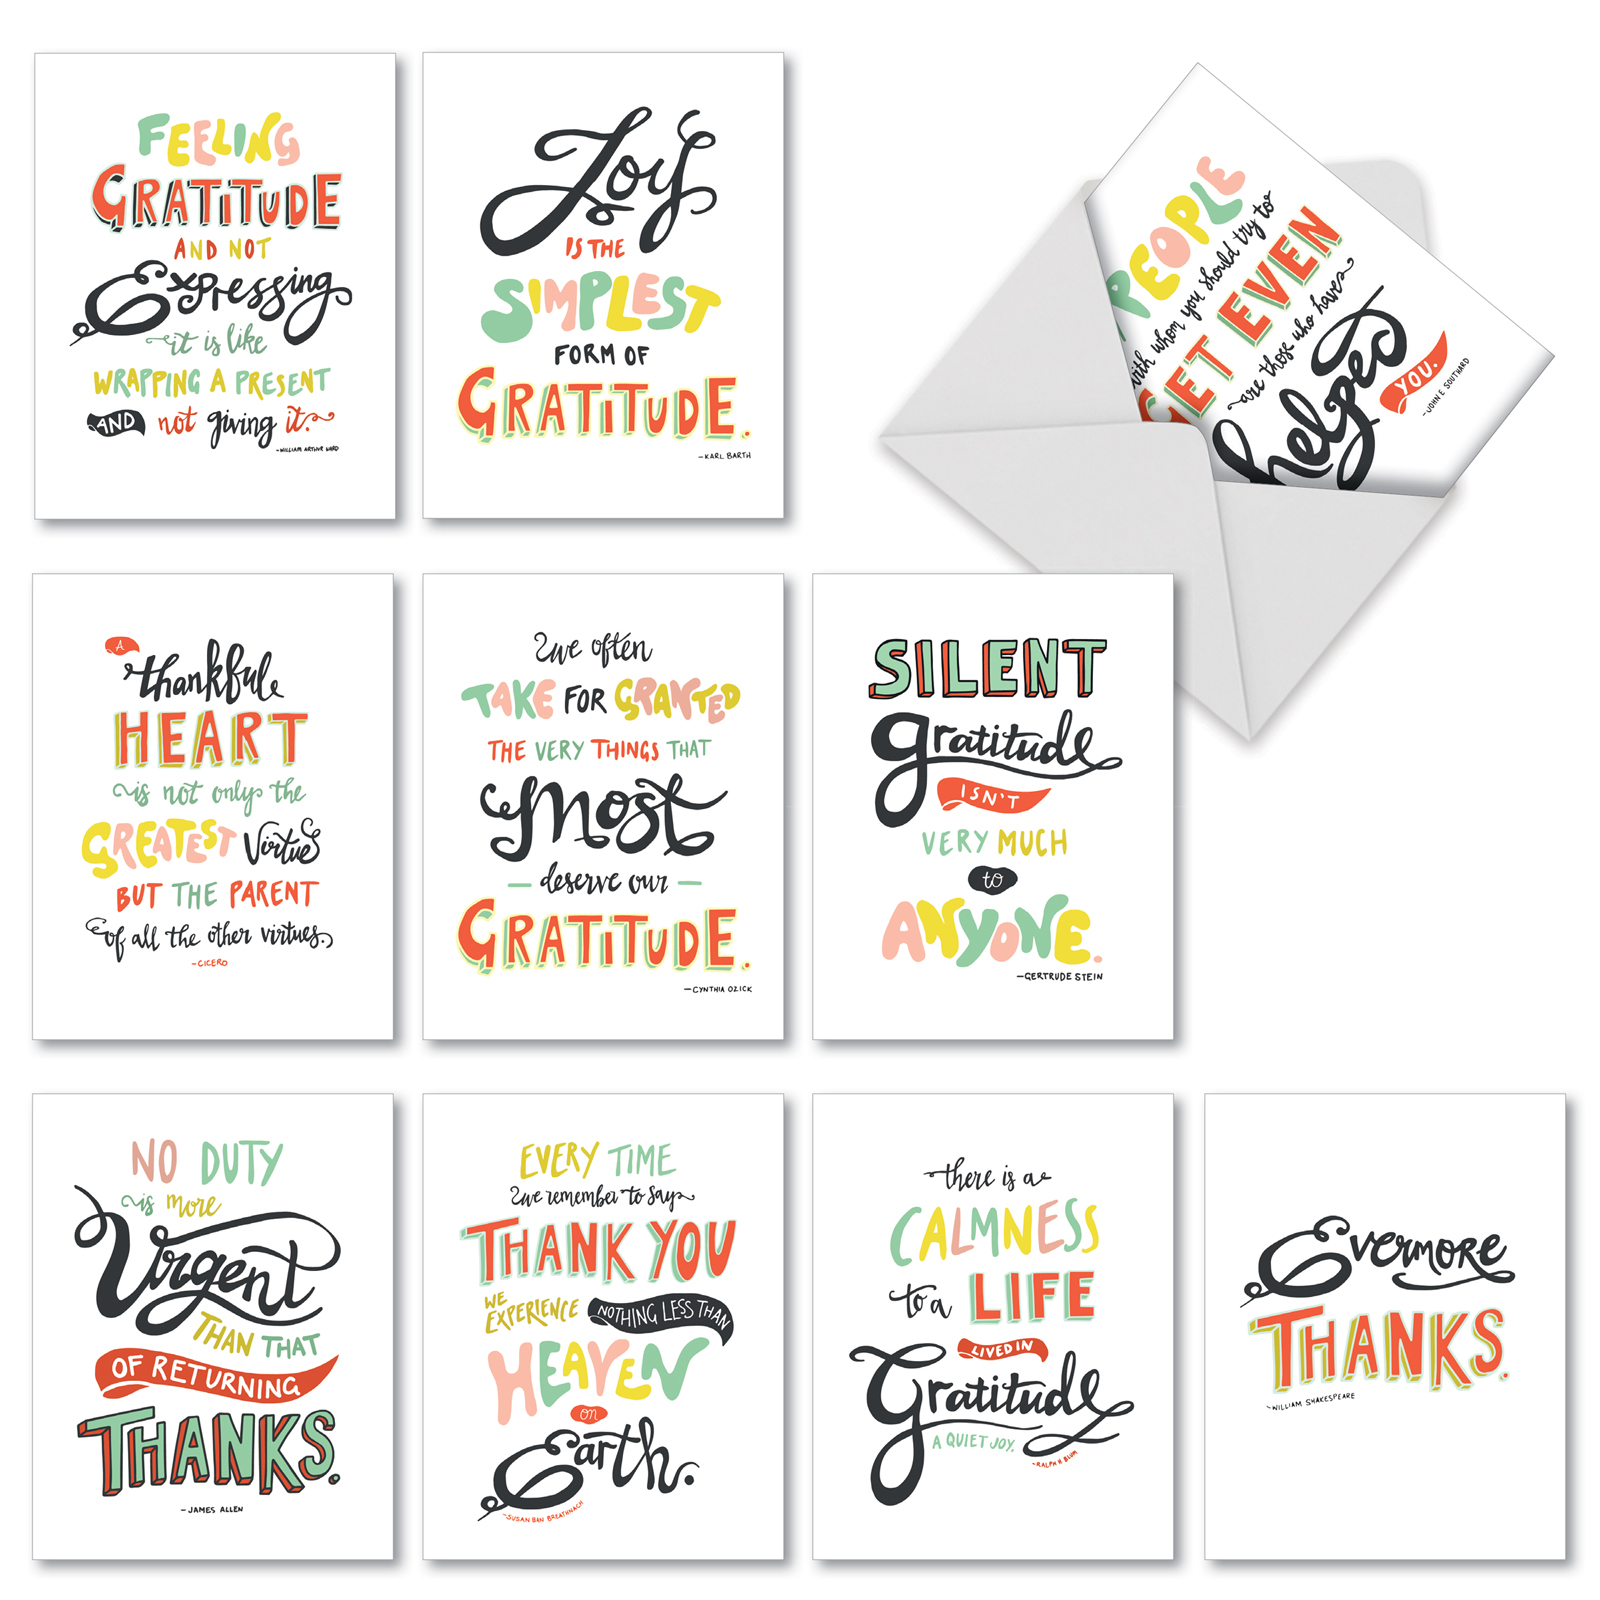 M10019BK Words Of Appreciation: 10 Assorted Blank Thank You Note Cards Featuring Artfully Rendered Words Of Appreciation And Thanks, Stationery with Envelopes